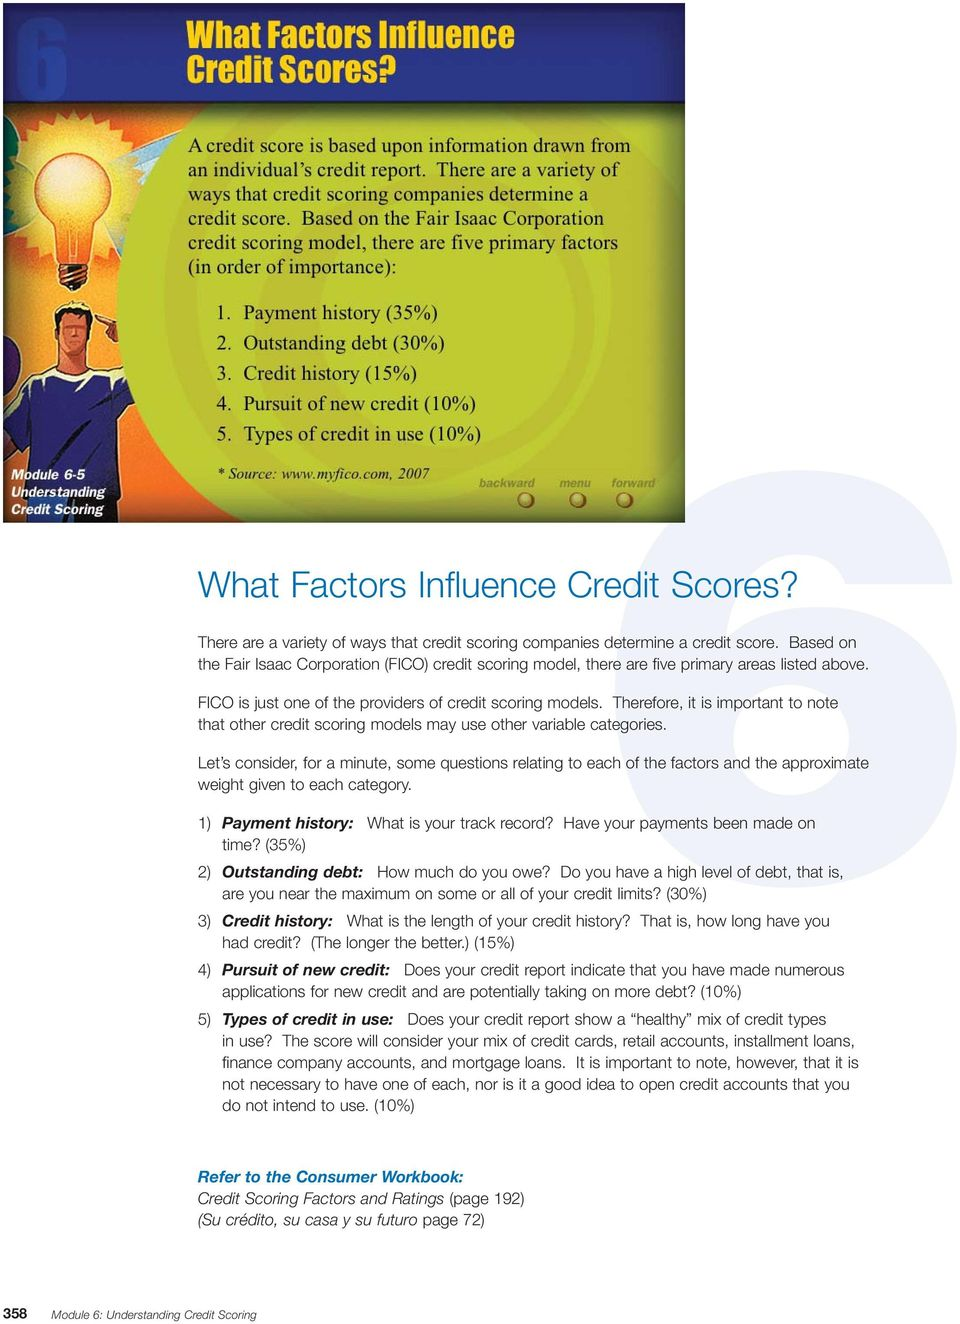 Therefore, it is important to note that other credit scoring models may use other variable categories.